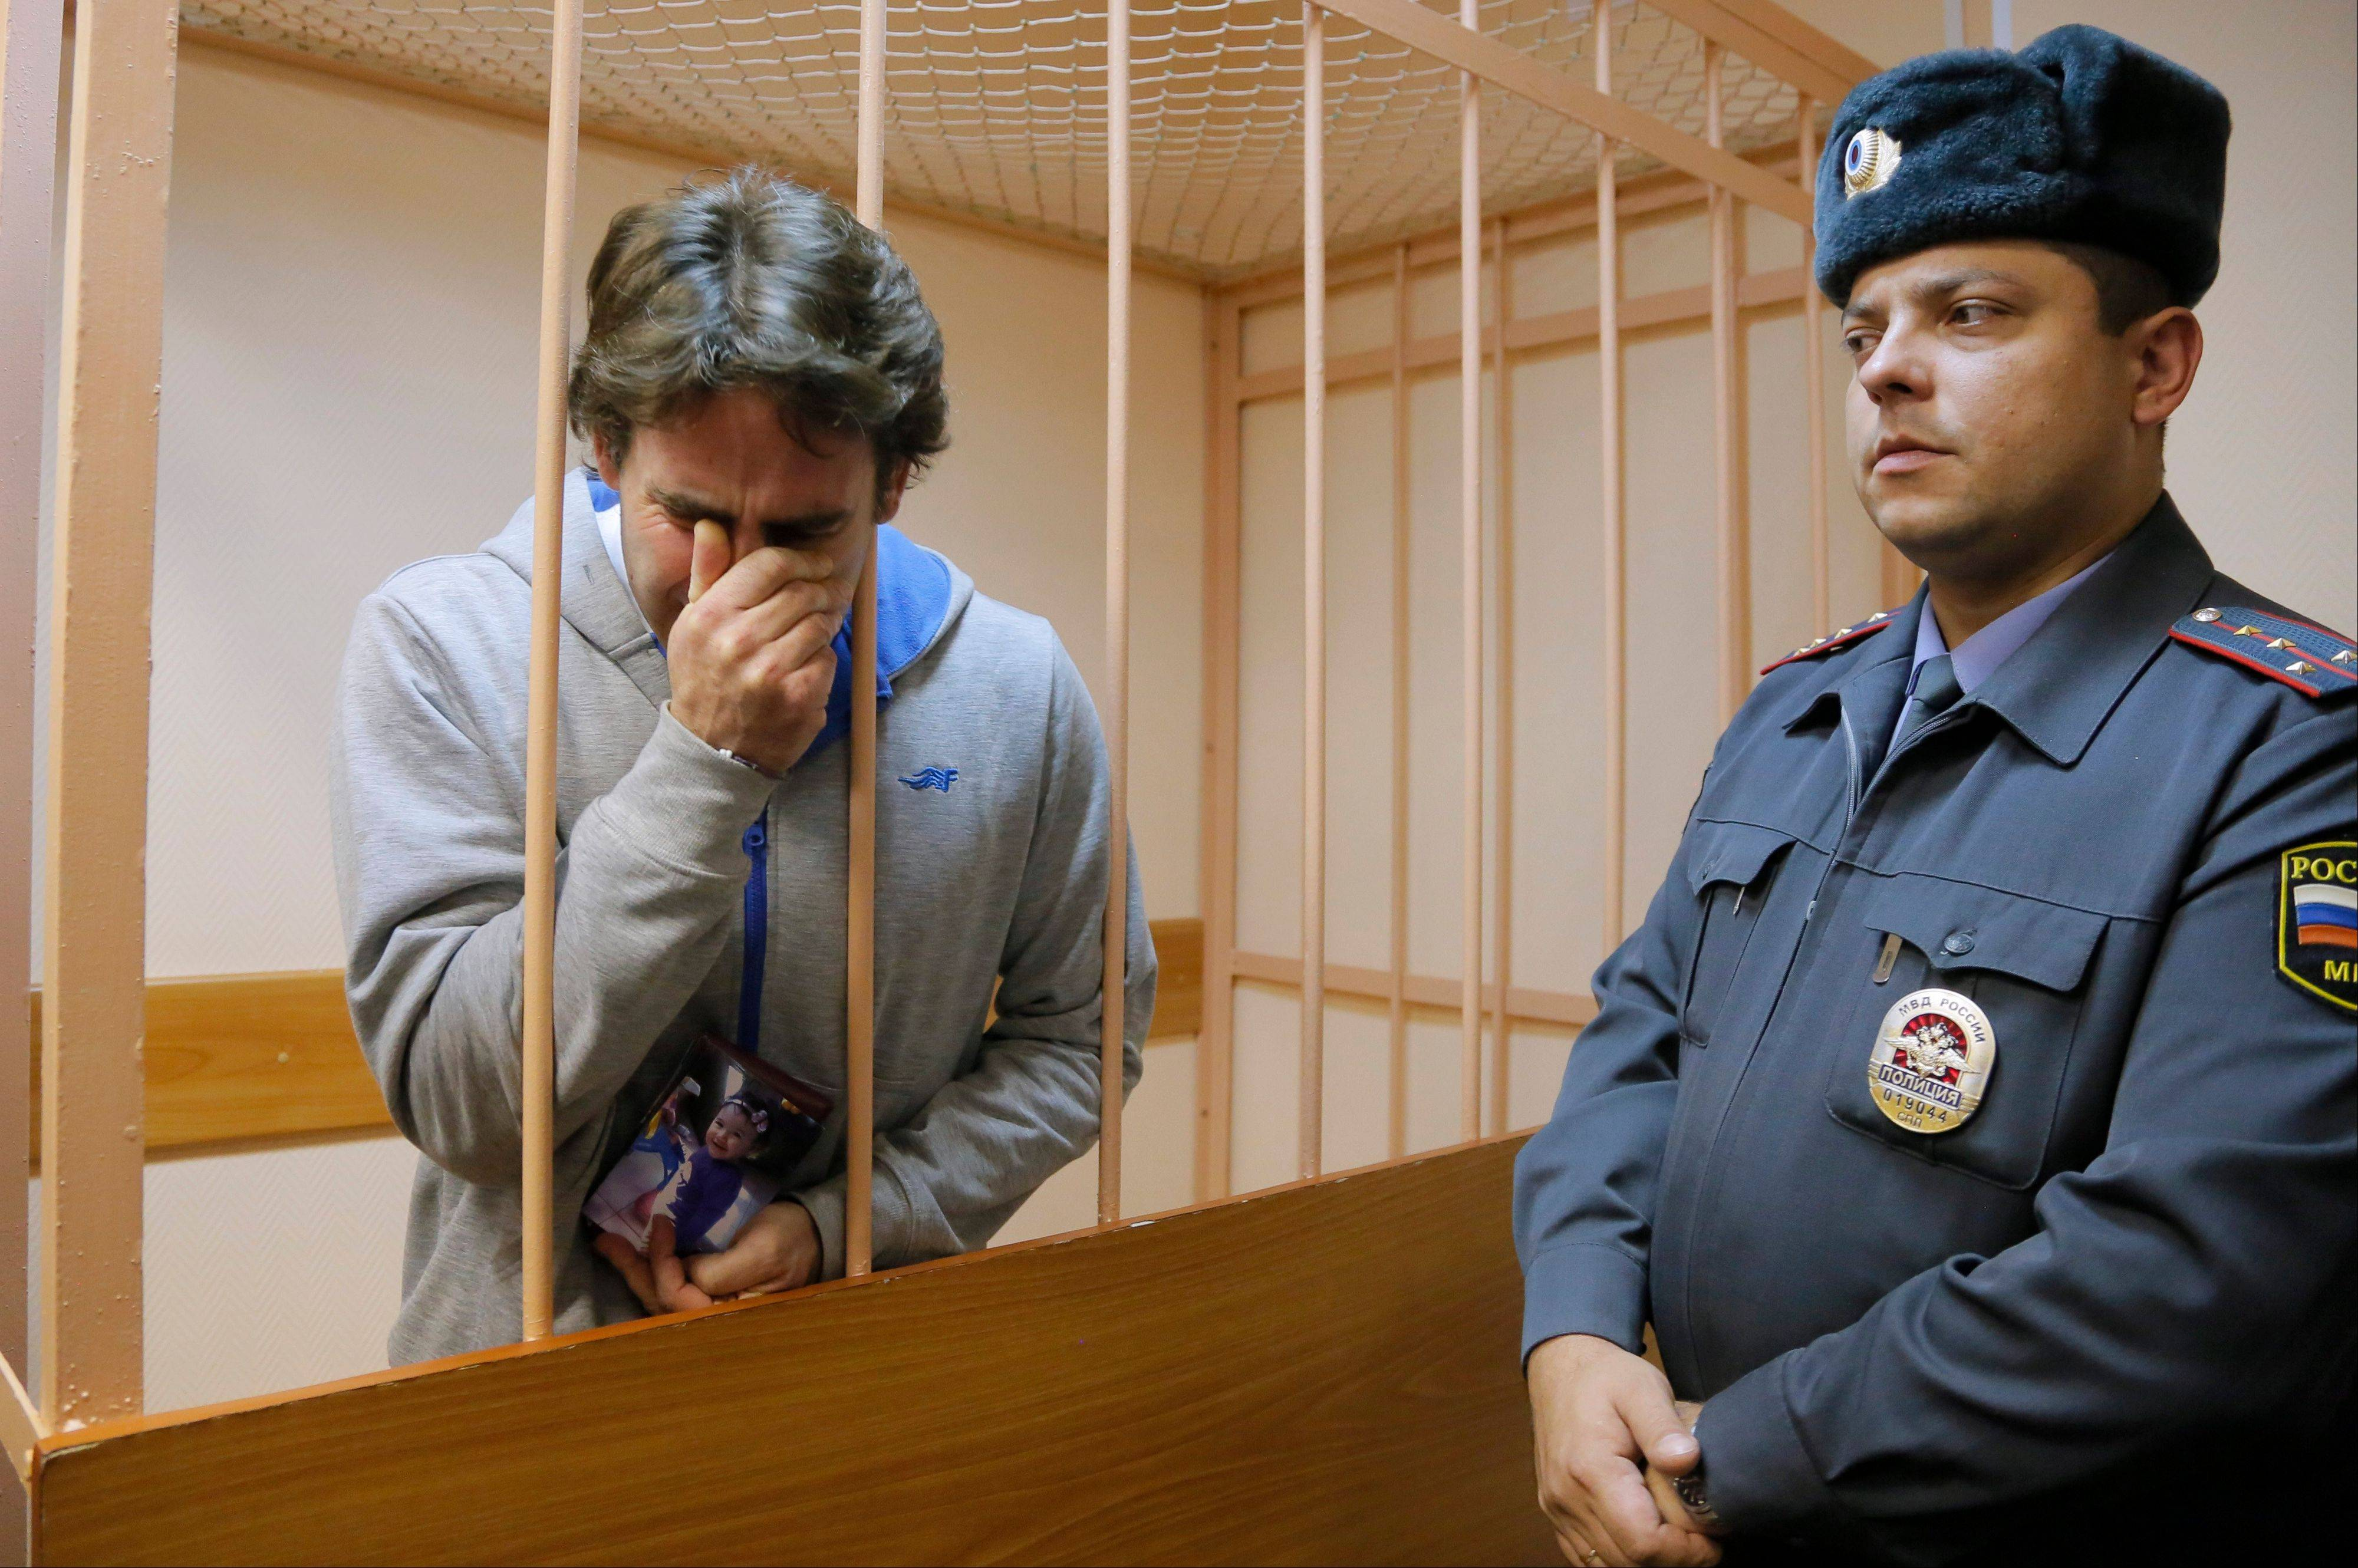 A Russian court on Tuesday granted bail to Greenpeace protesters from Argentina, Brazil, Canada, Italy, New Zealand and Poland, the first group of foreign activists eligible for release from jail while awaiting trial for participating in a demonstration near a Russian oil rig. Activist Miguel Hernan Perez Orsi of Argentina, left, reacts to the verdict.